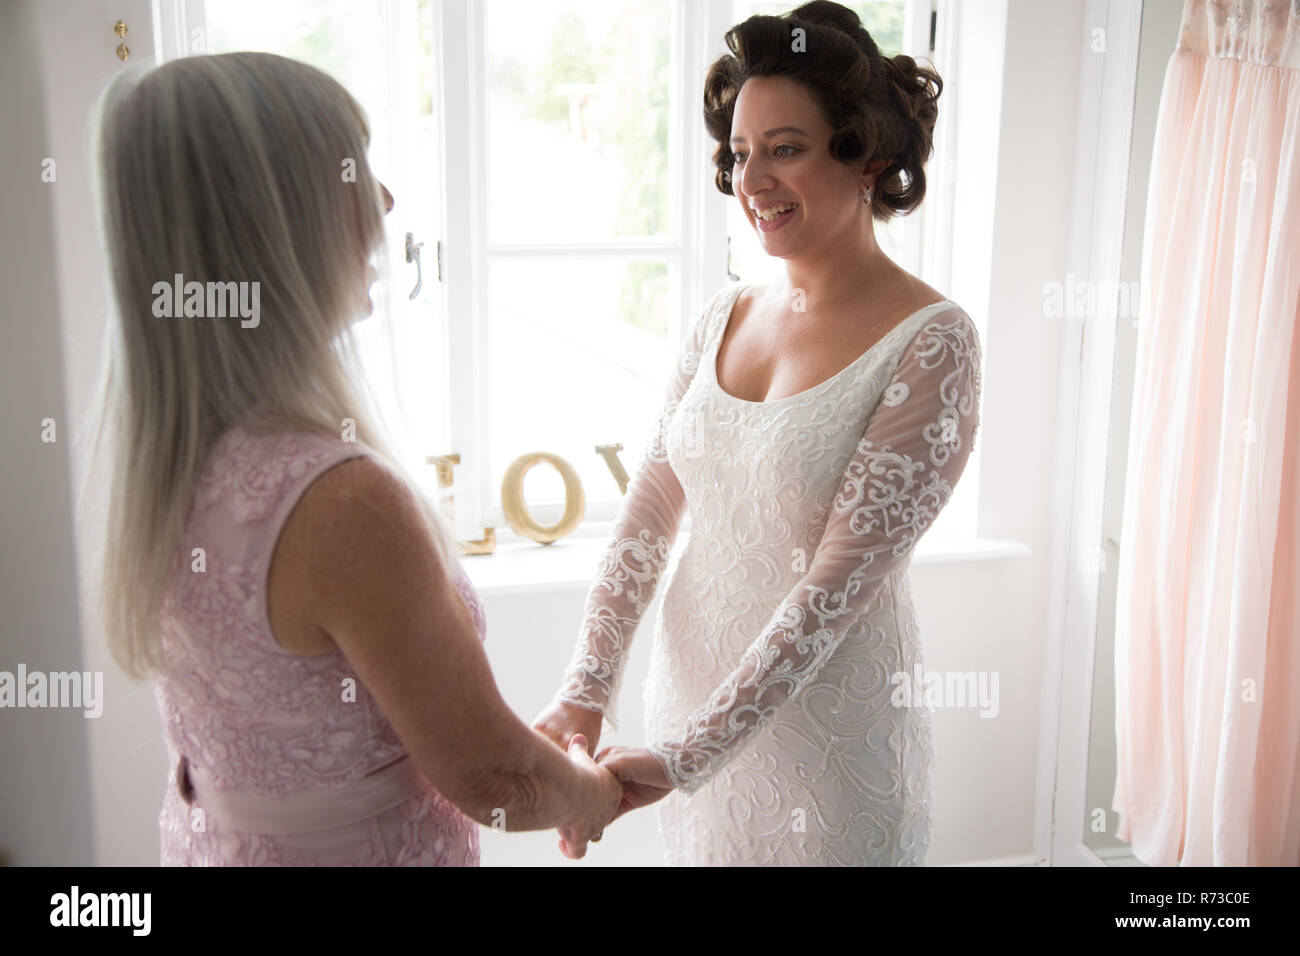 Bride And Mother On Morning Of Wedding Day Stock Photo Alamy,Party Dress For Wedding Guest